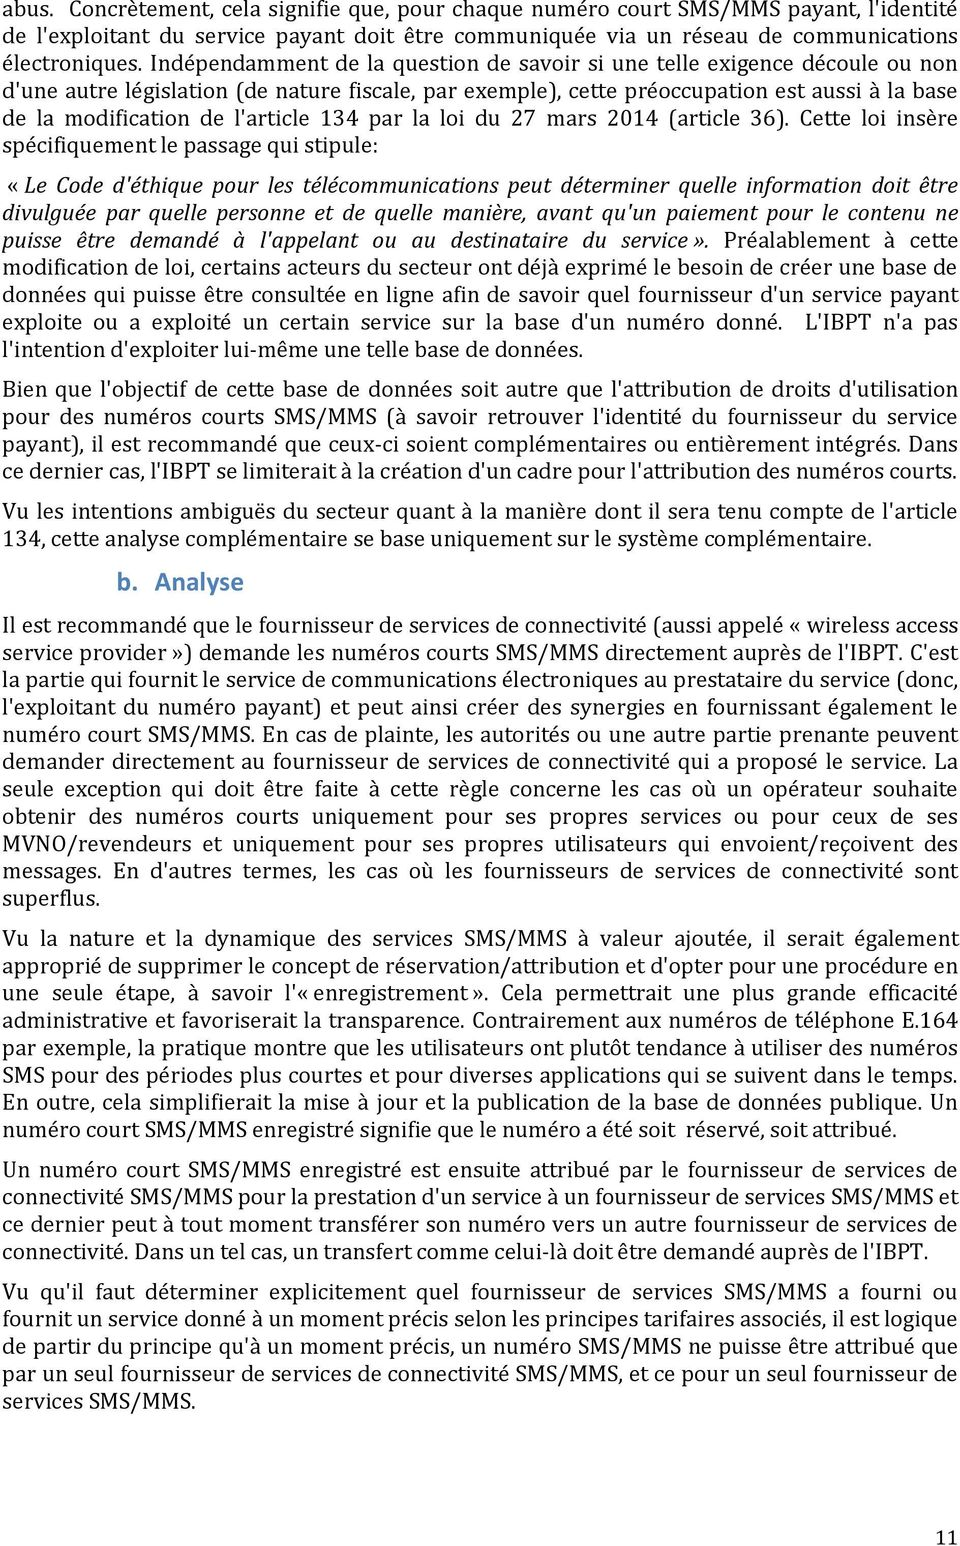 l'article 134 par la loi du 27 mars 2014 (article 36).